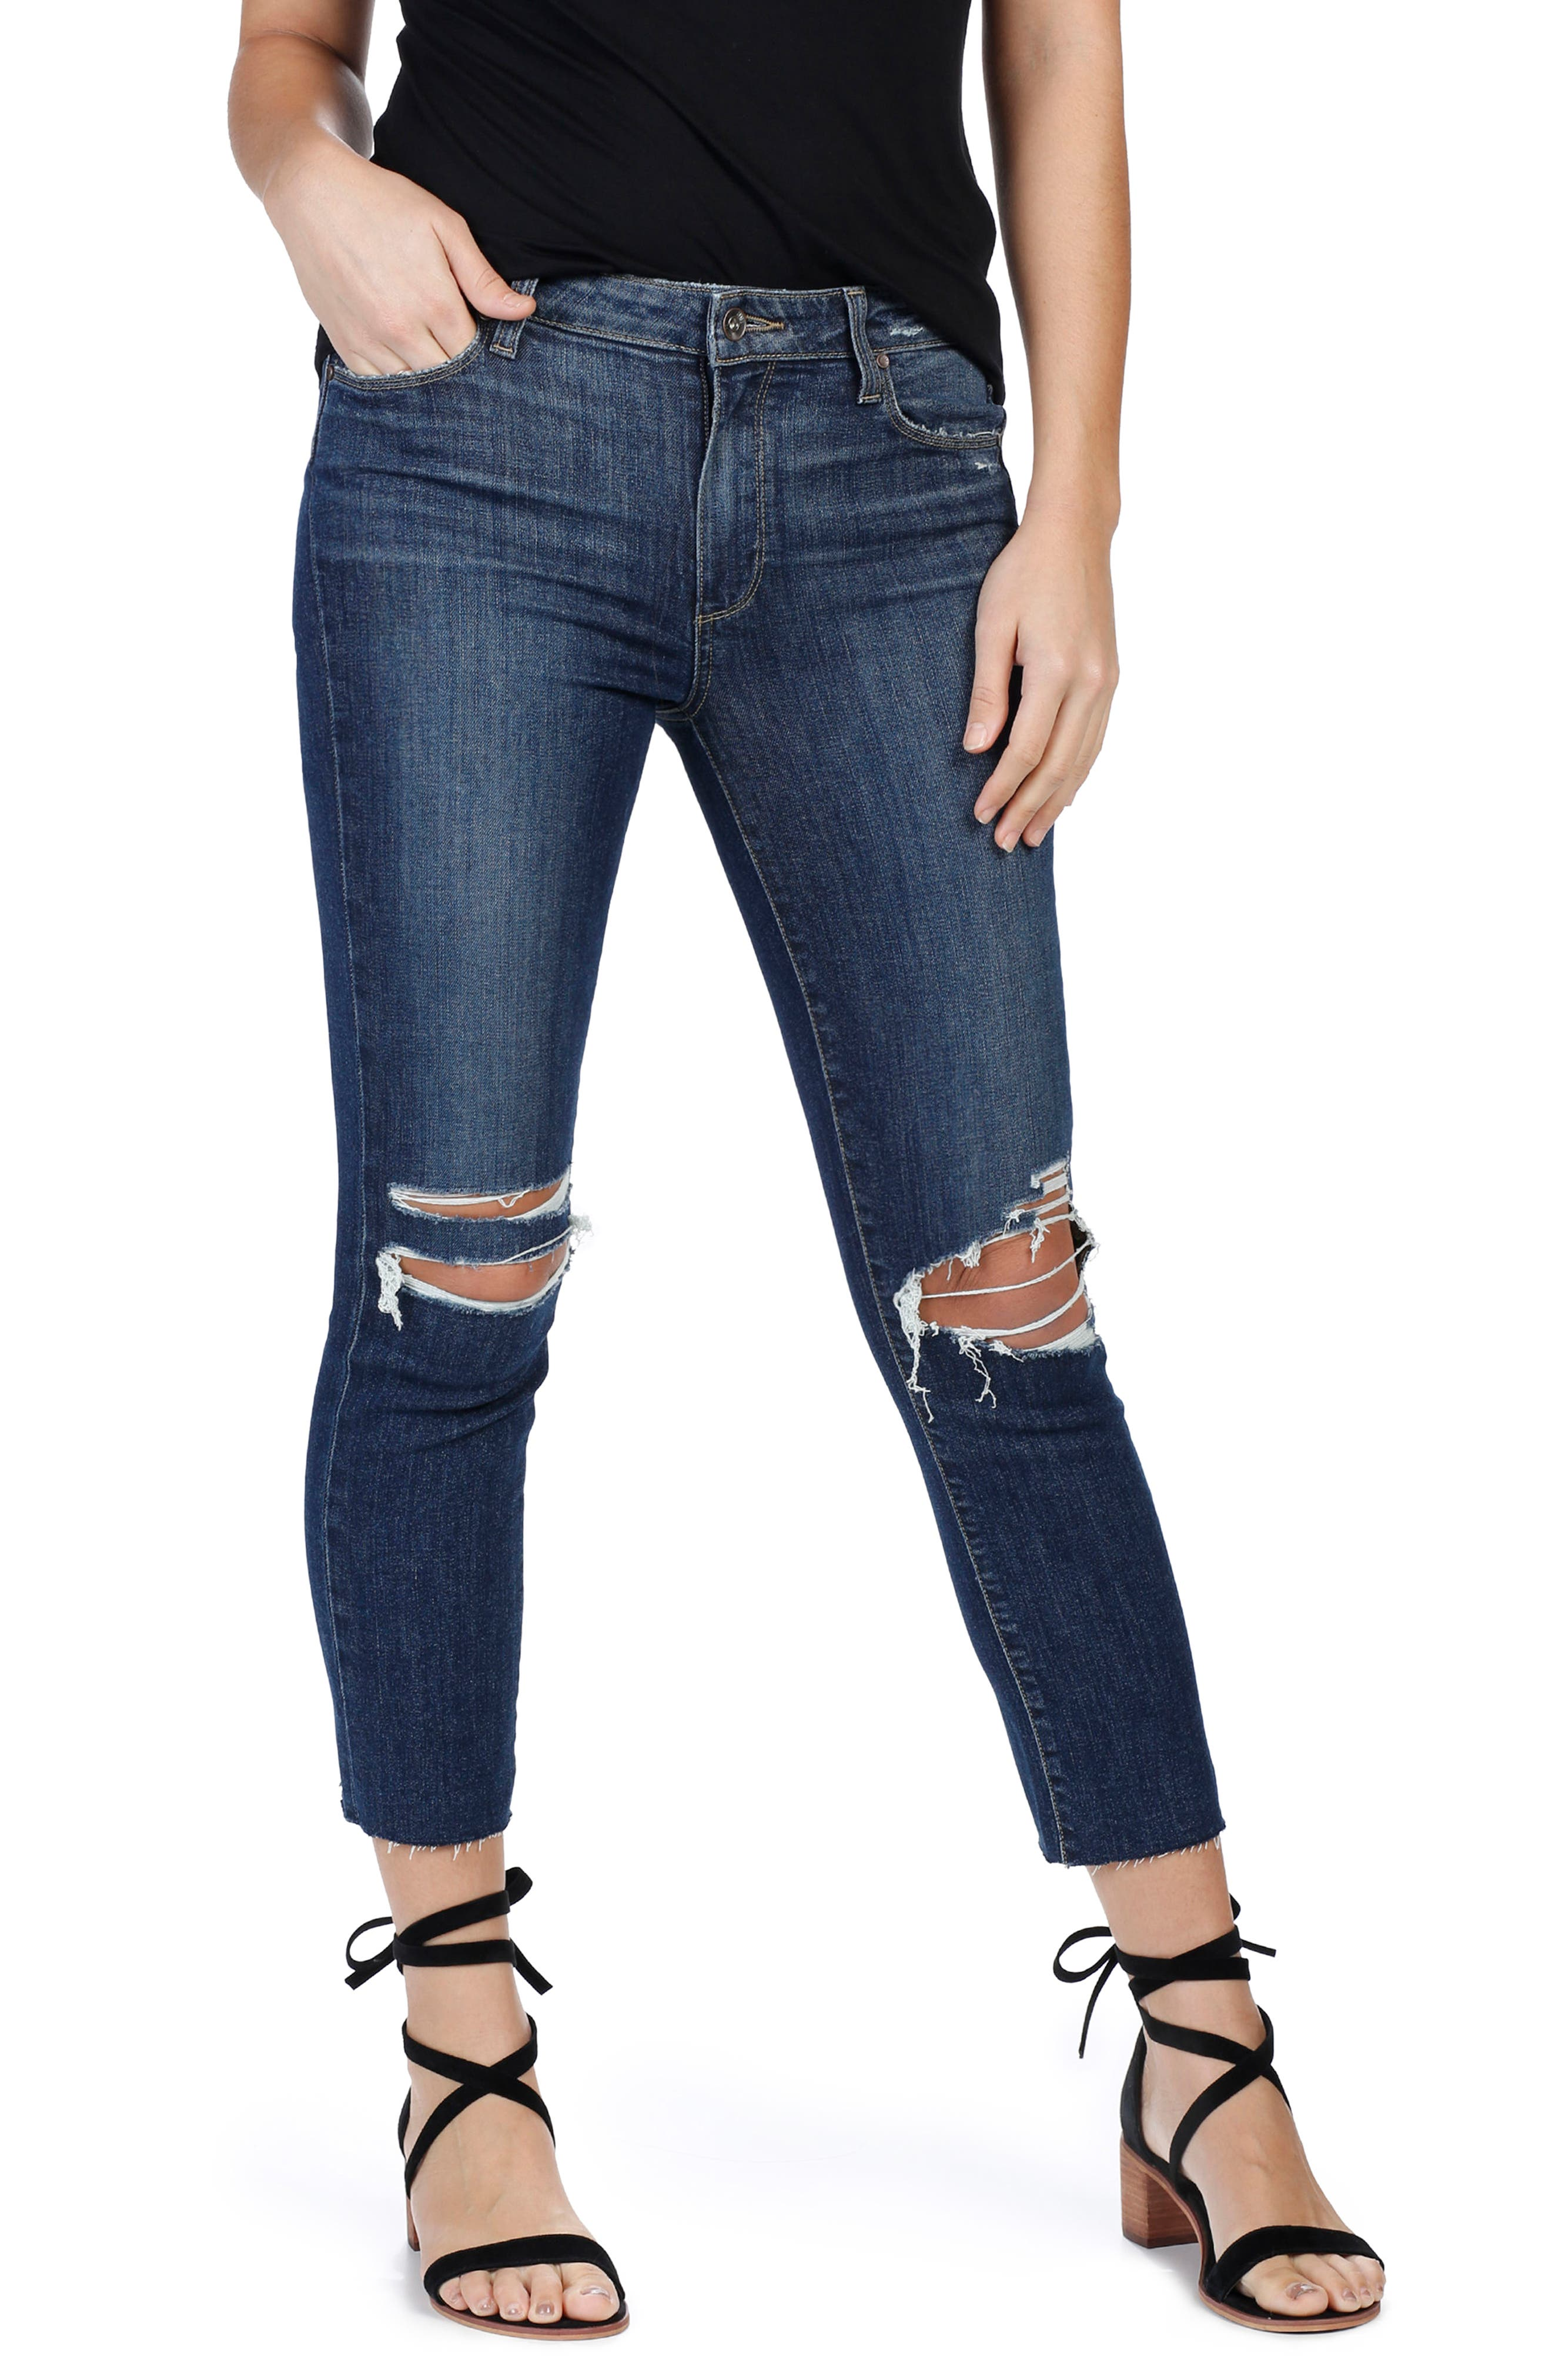 PAIGE Jacqueline High Rise Ripped Straight Leg Jeans